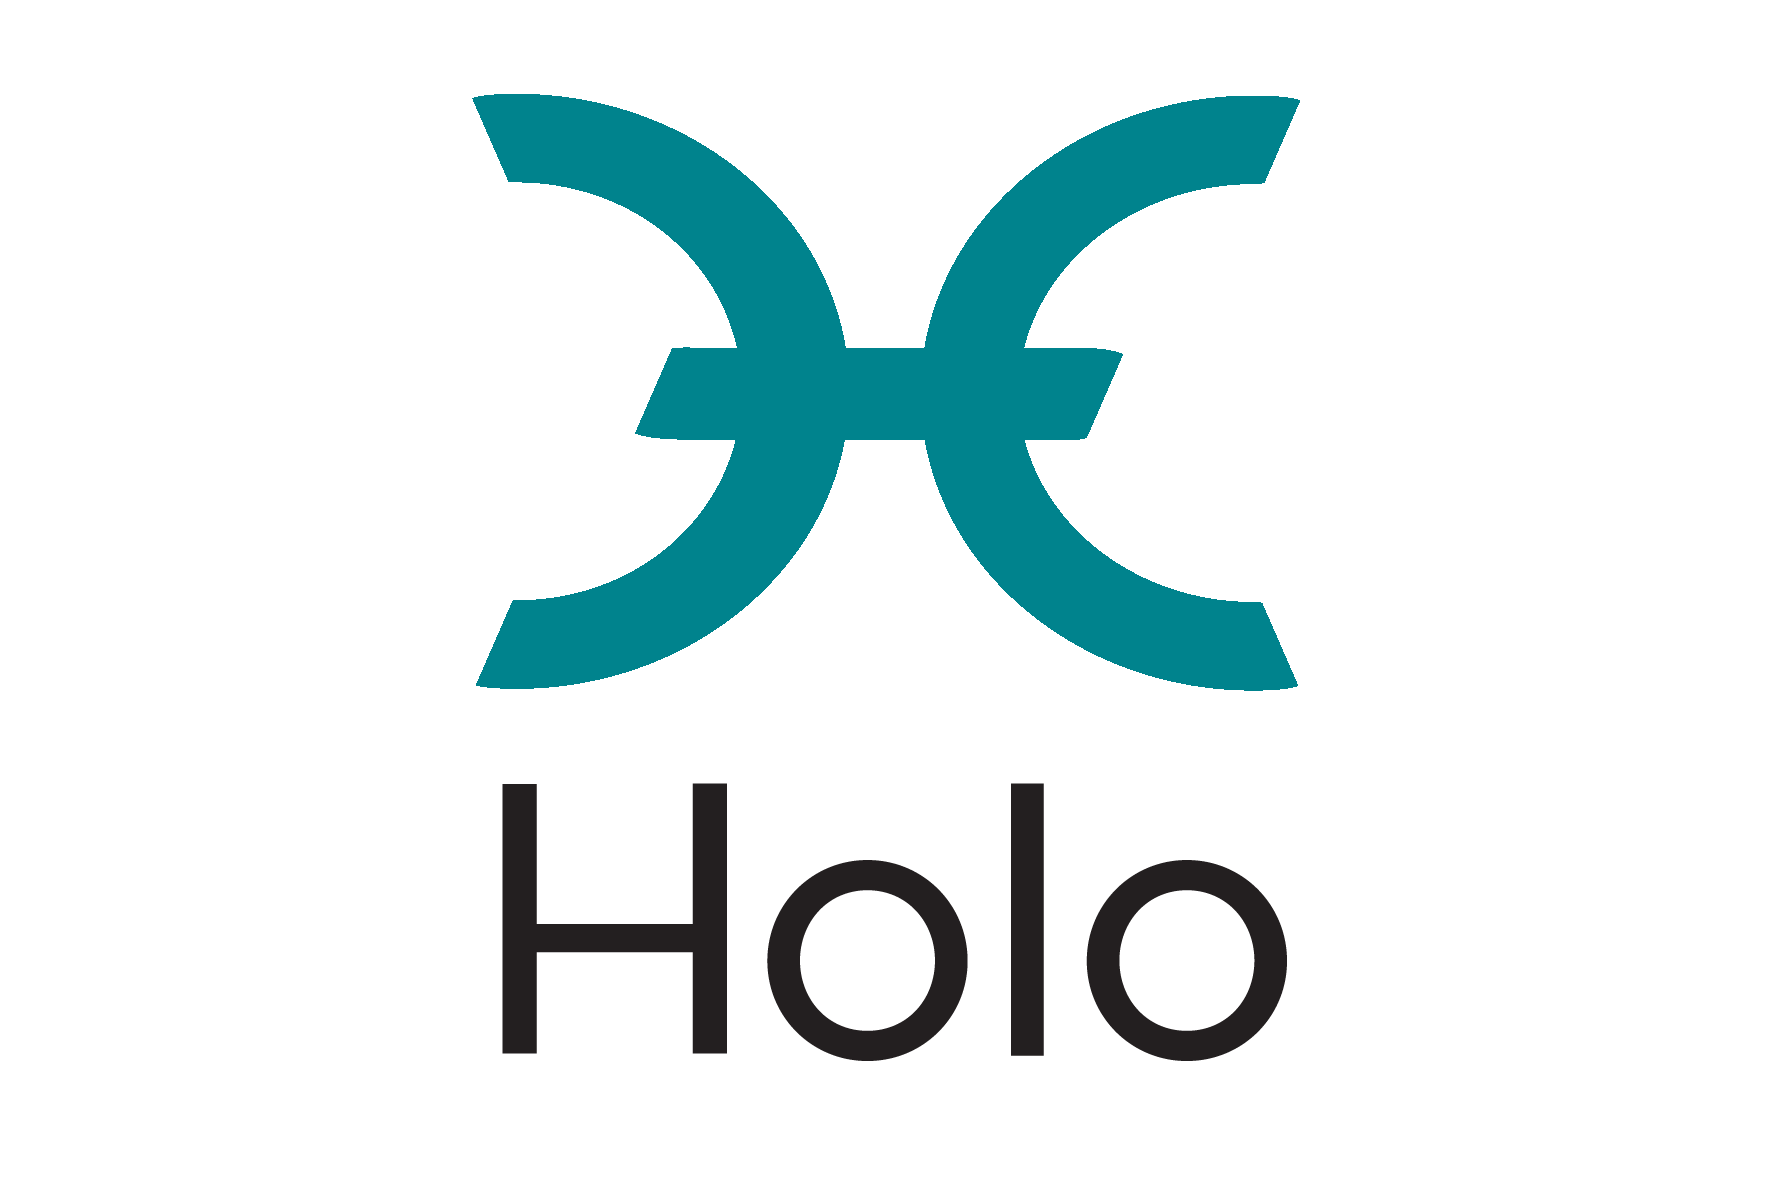 Holo+logo_Final-08NEW+BLUE.png